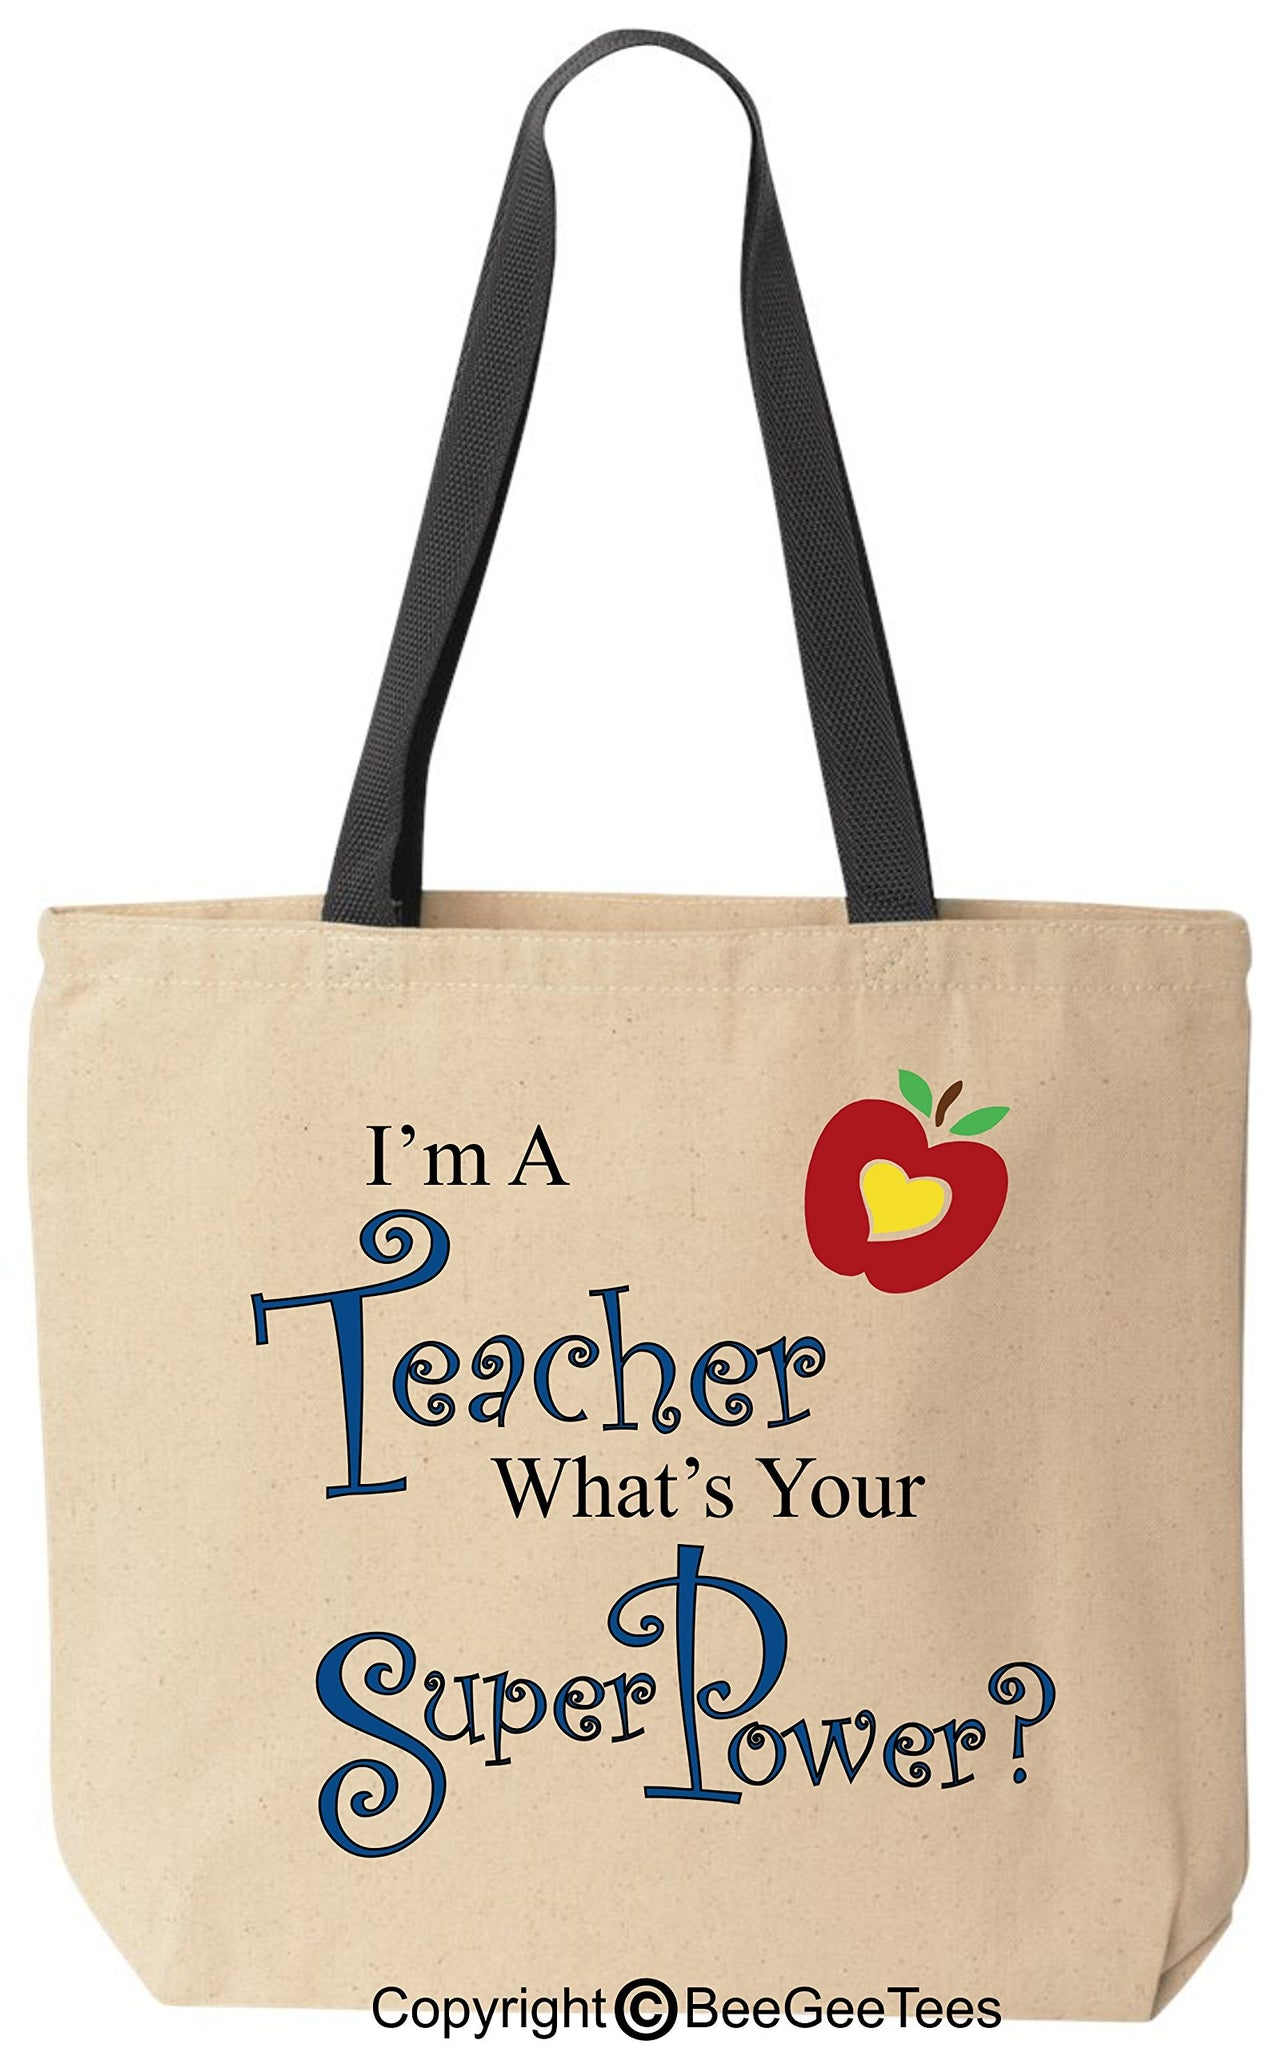 I'm A Teacher What's Your Super Power? - Funny Cotton Canvas Tote Bag - Reusable by BeeGeeTees 00488